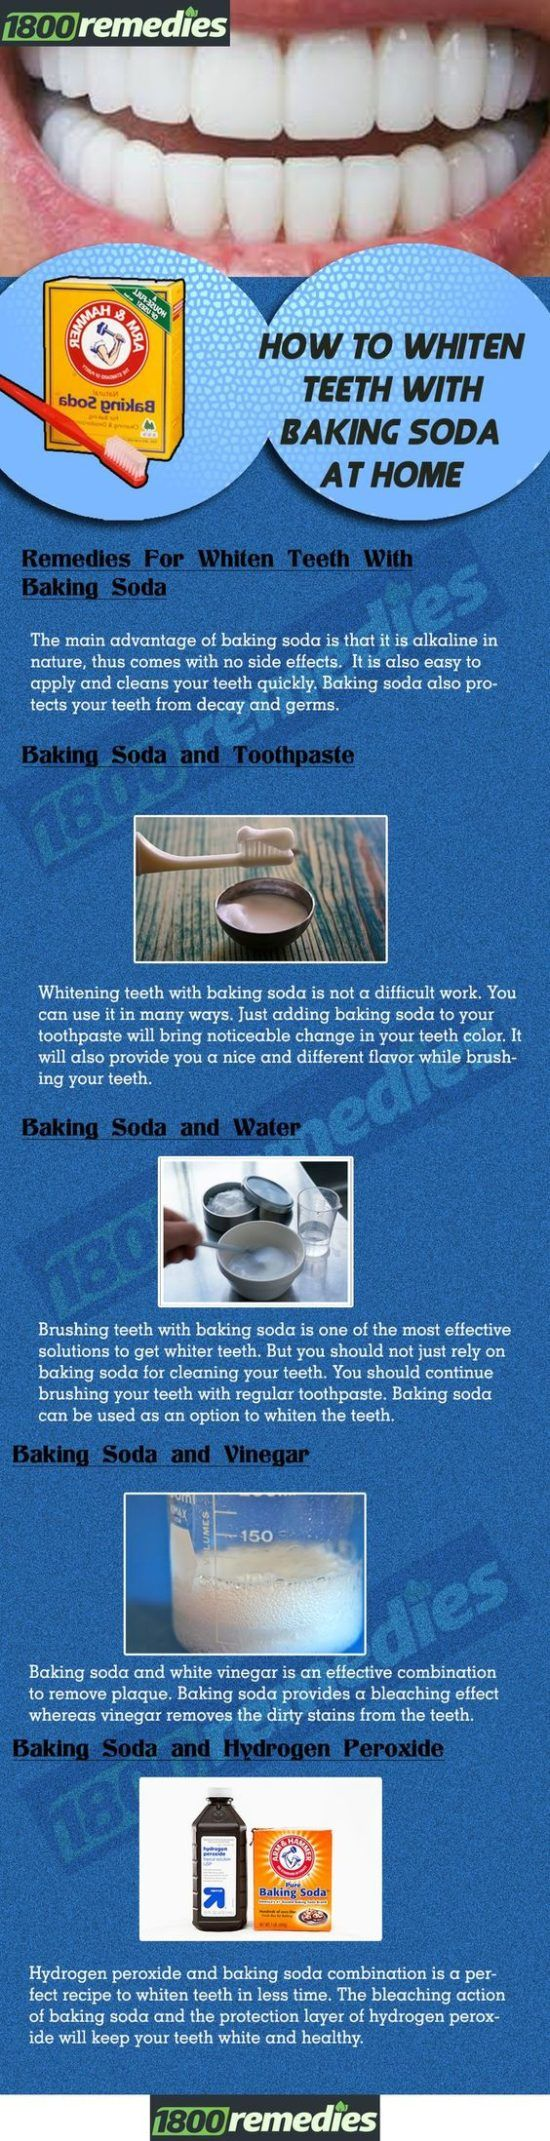 How To Whiten Teeth With Baking Soda At Home